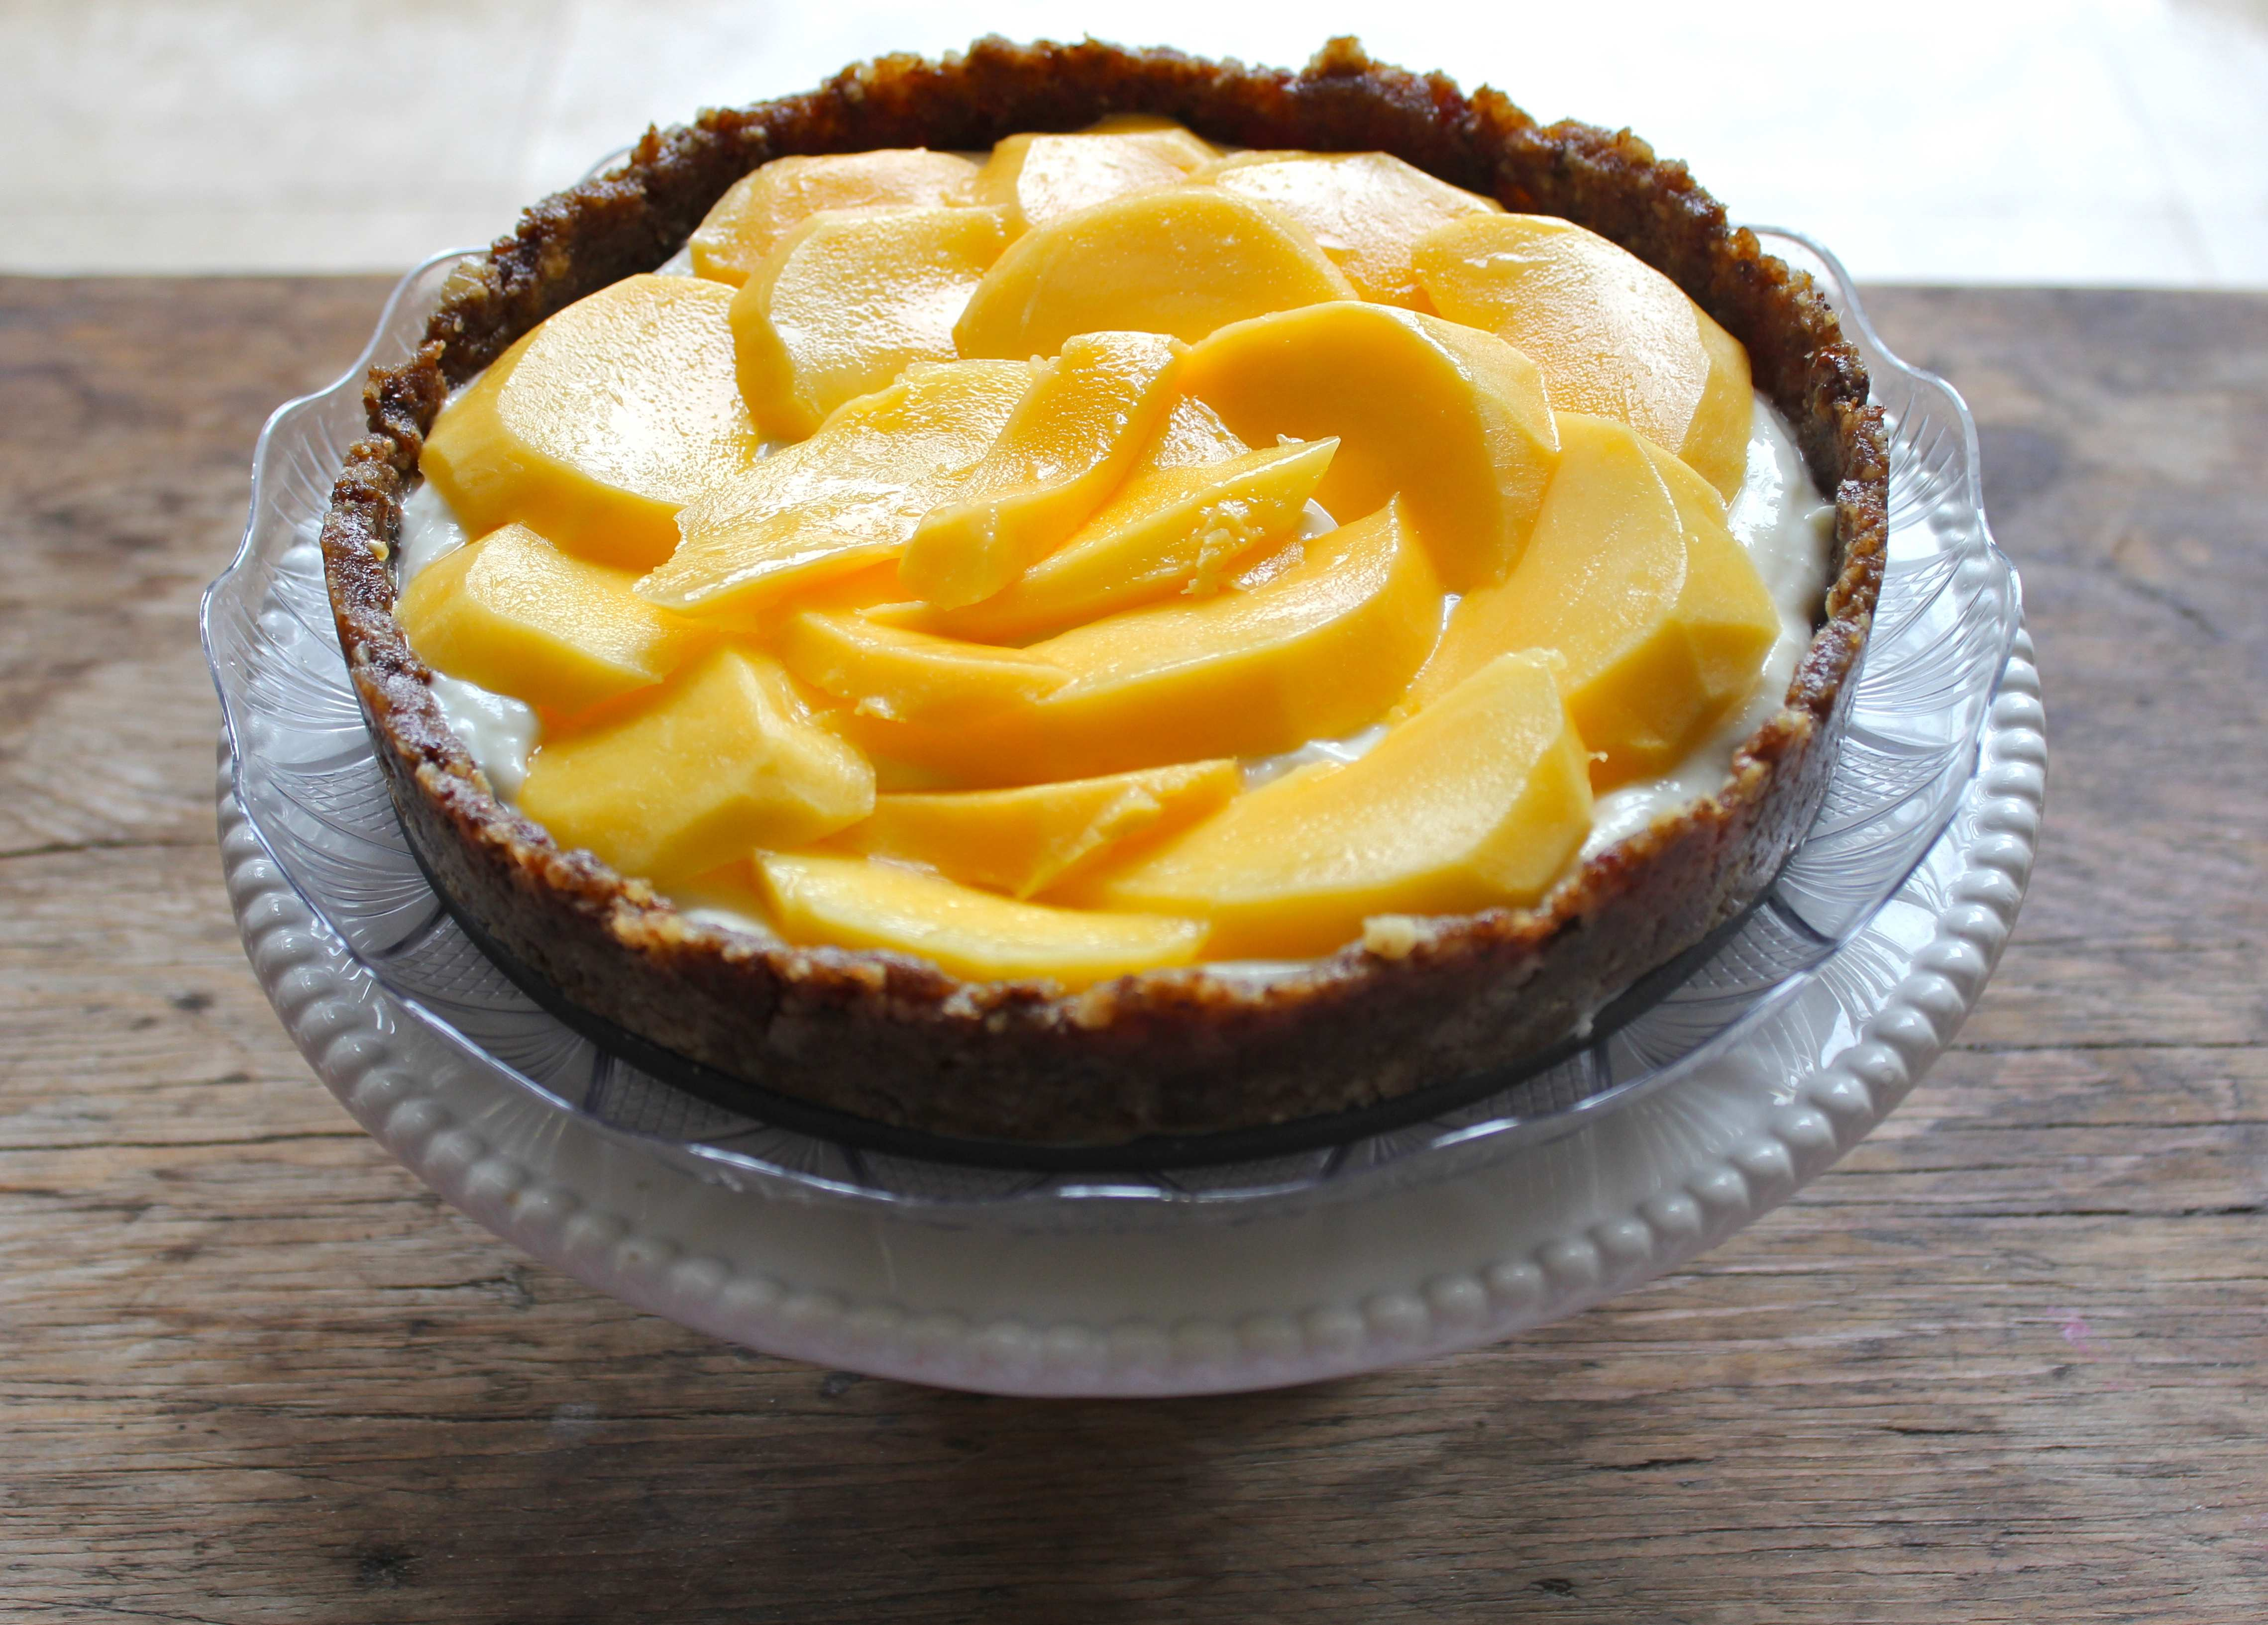 ... yogurt tart fresh orange yogurt tart mango mousse tart slice oranges